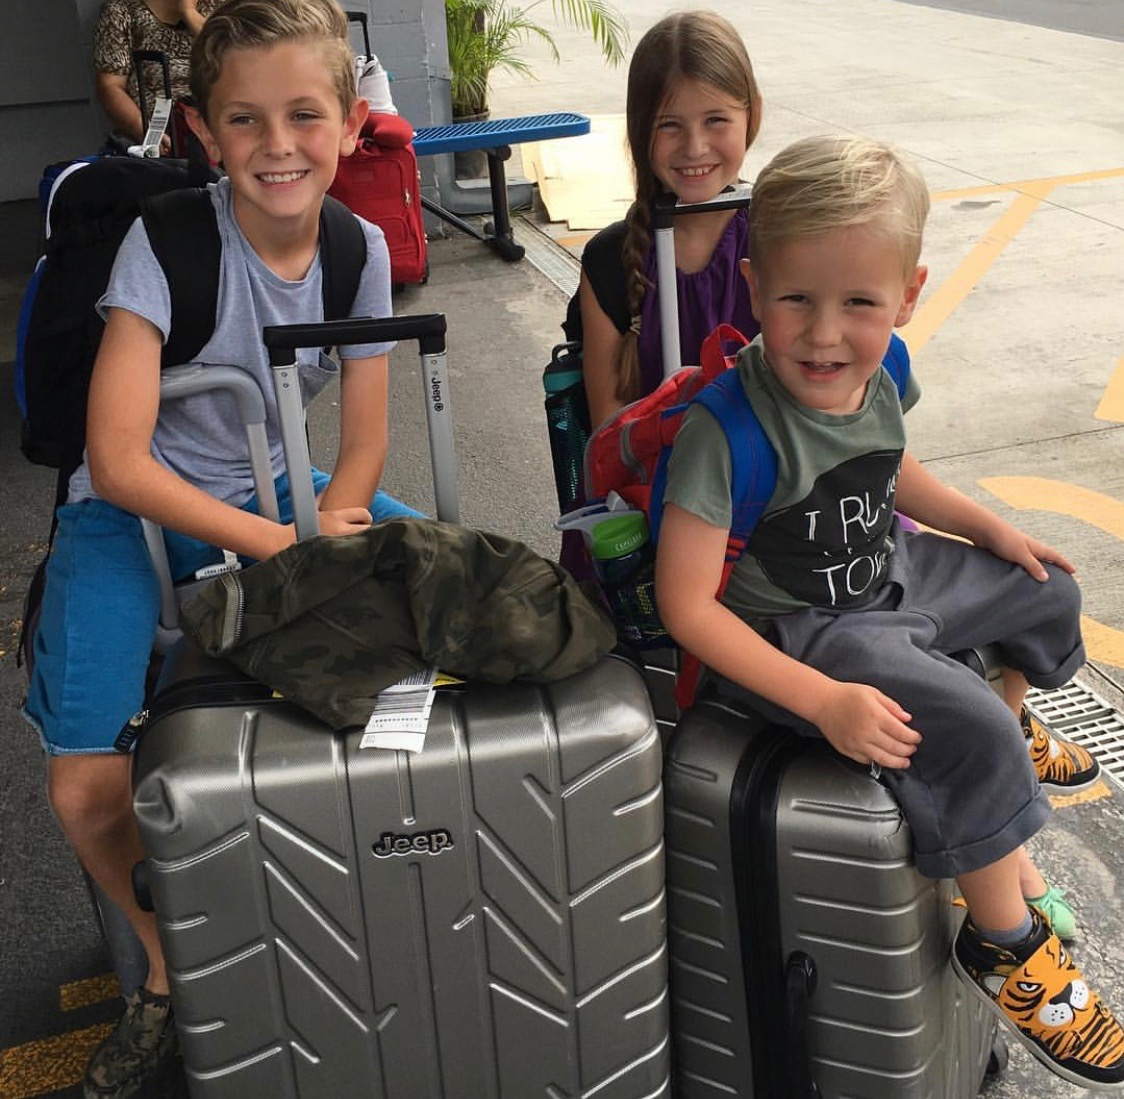 We put everyone in charge of one backpack and one suitcase to give them some responsibility on the trip